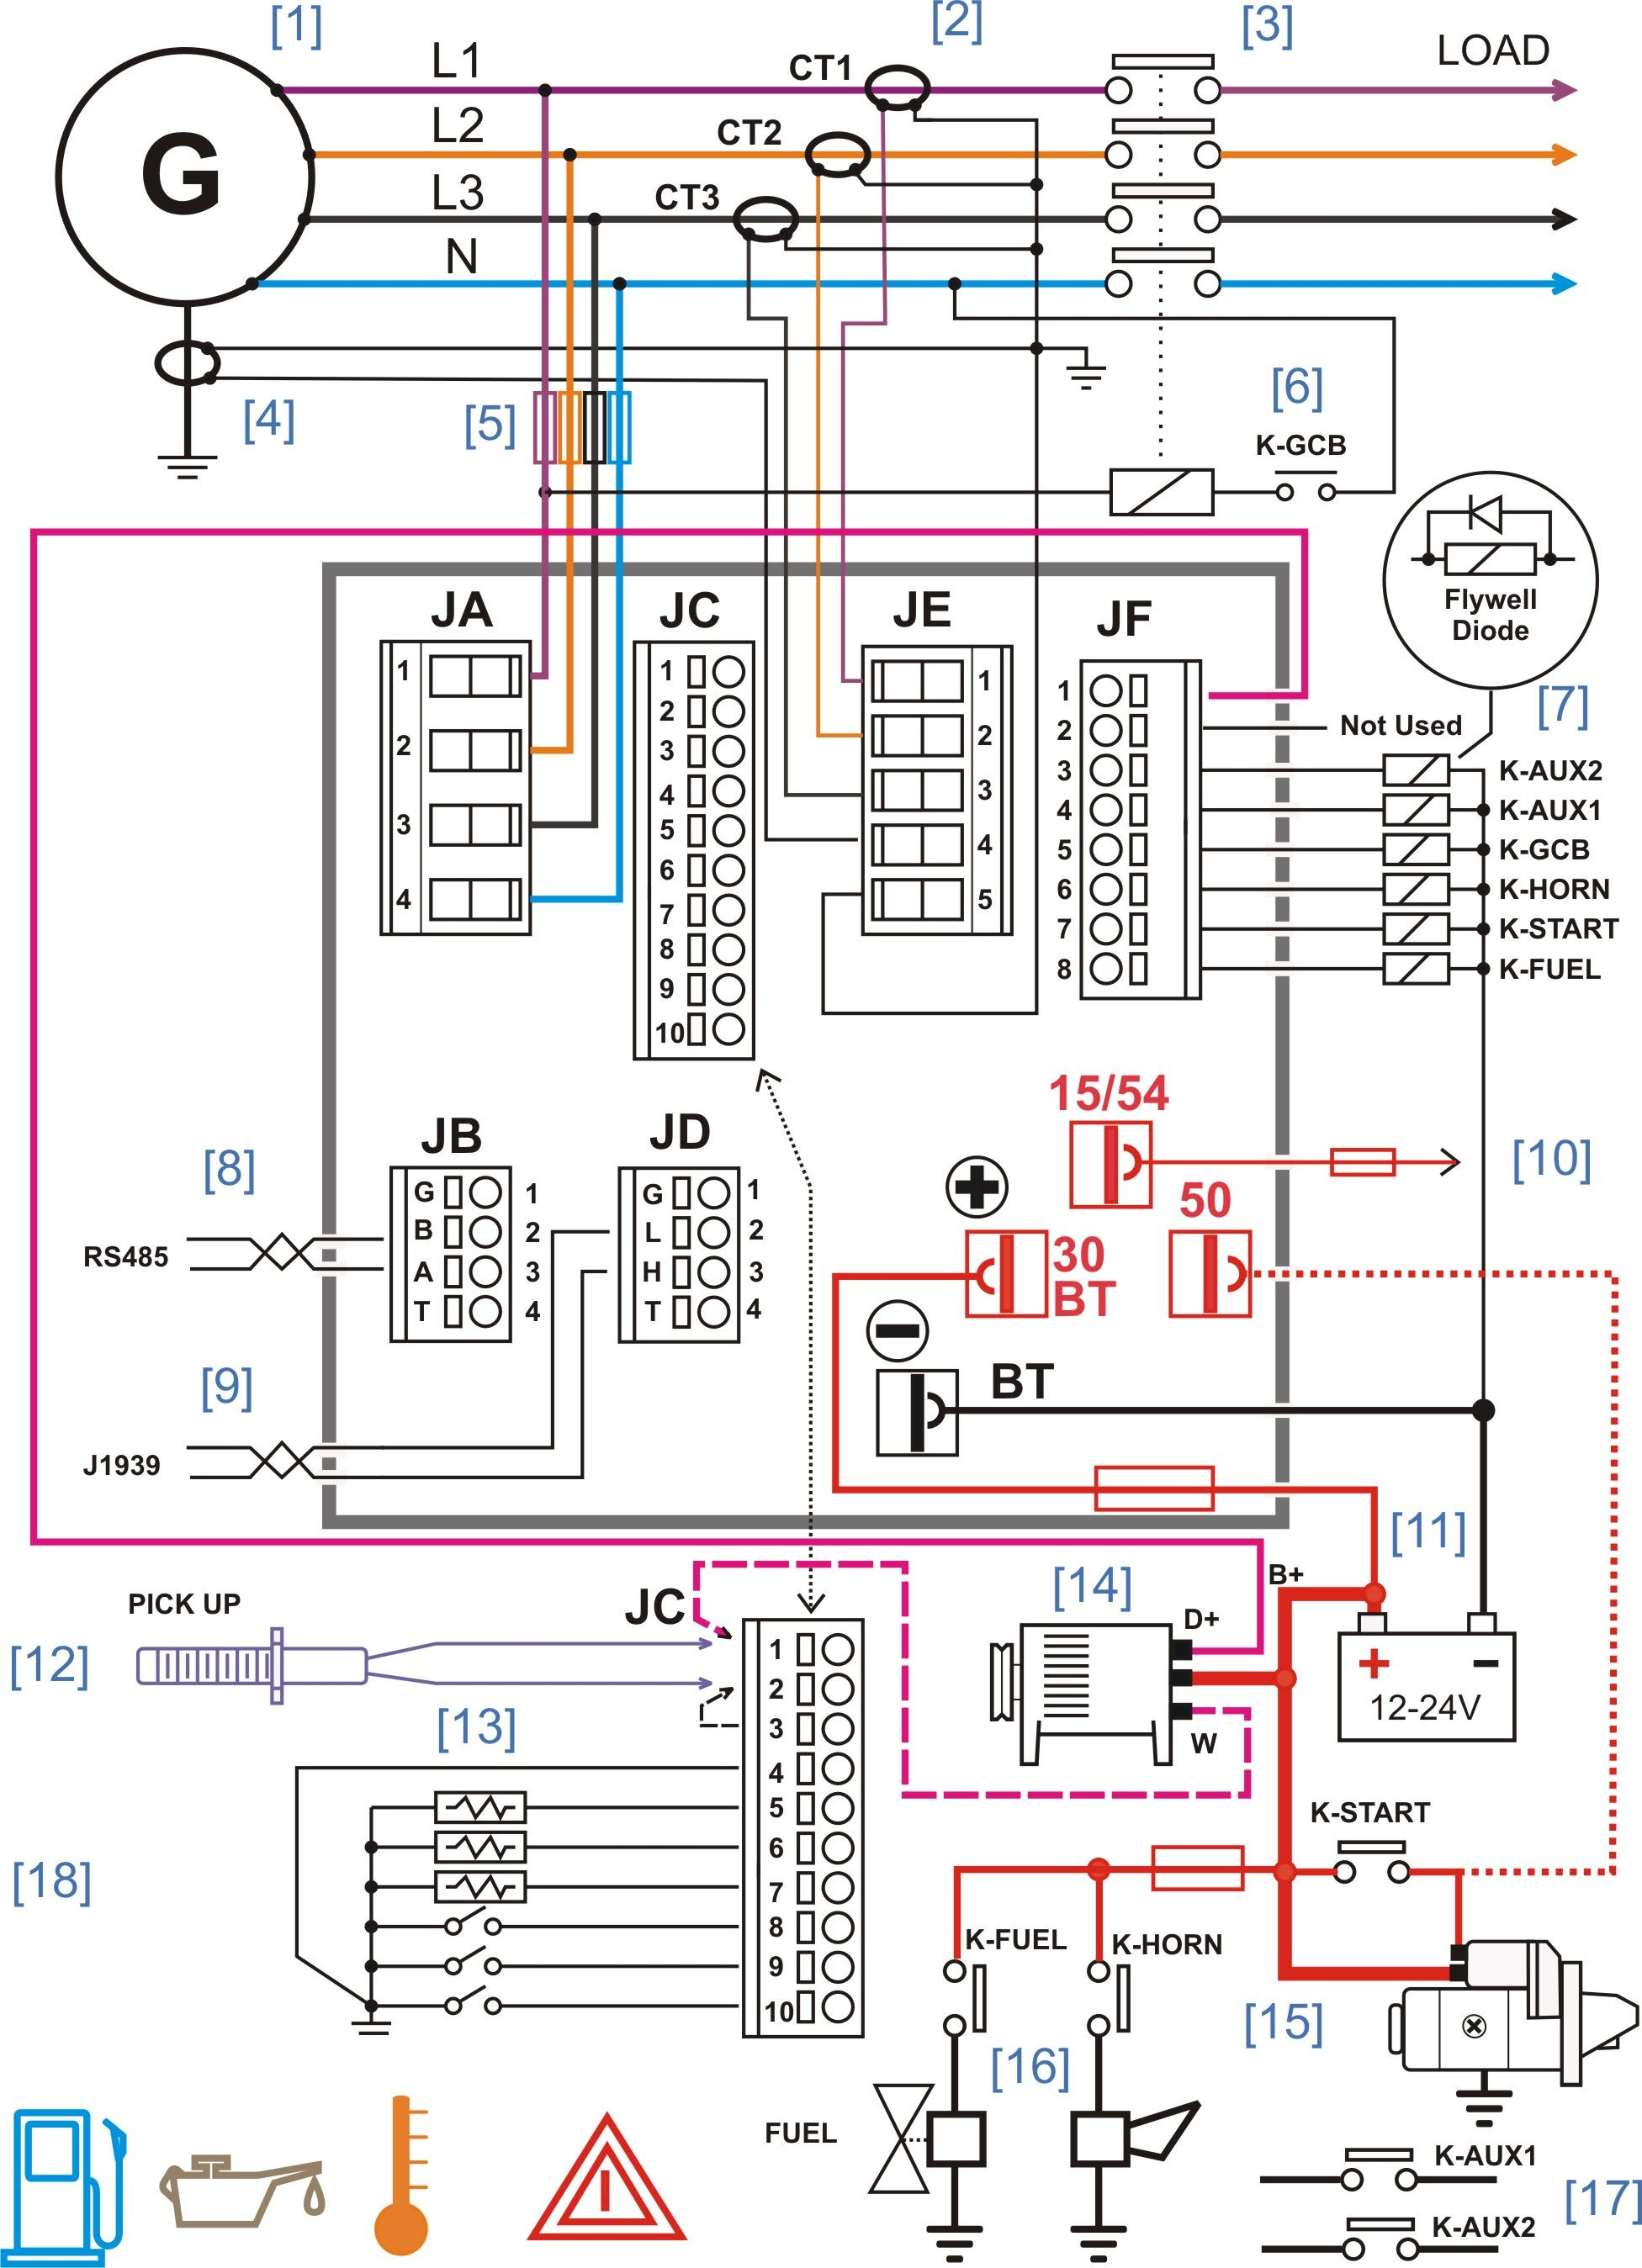 e32695bfa9986573569381a039ba42a6 diesel generator control panel wiring diagram gr pinterest wiring diagram for access control system at edmiracle.co